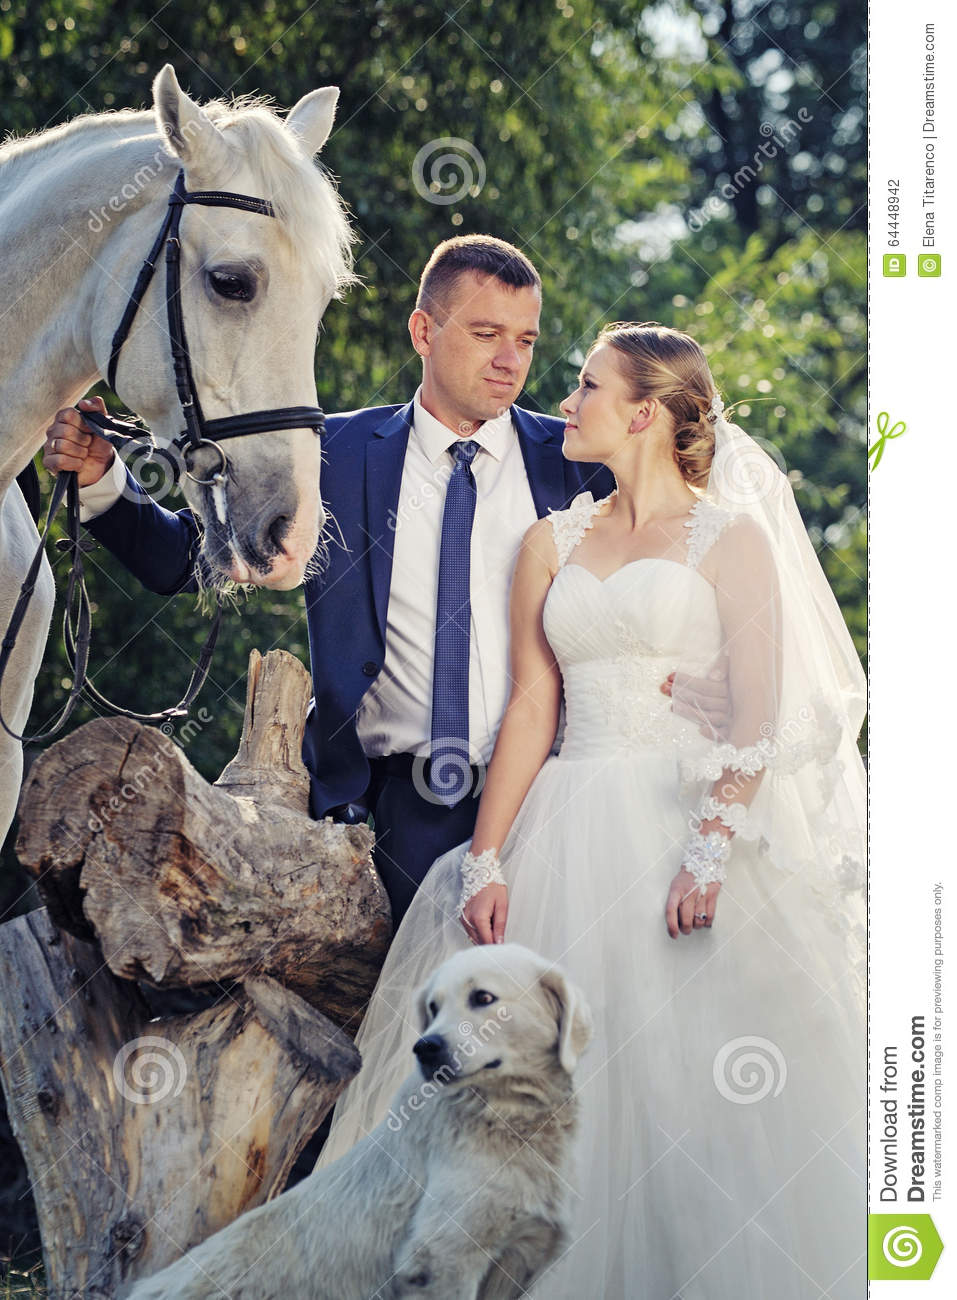 Wedding Bride And Groom With White Horse Stock Photo Image Of Dress Kiss 64448942